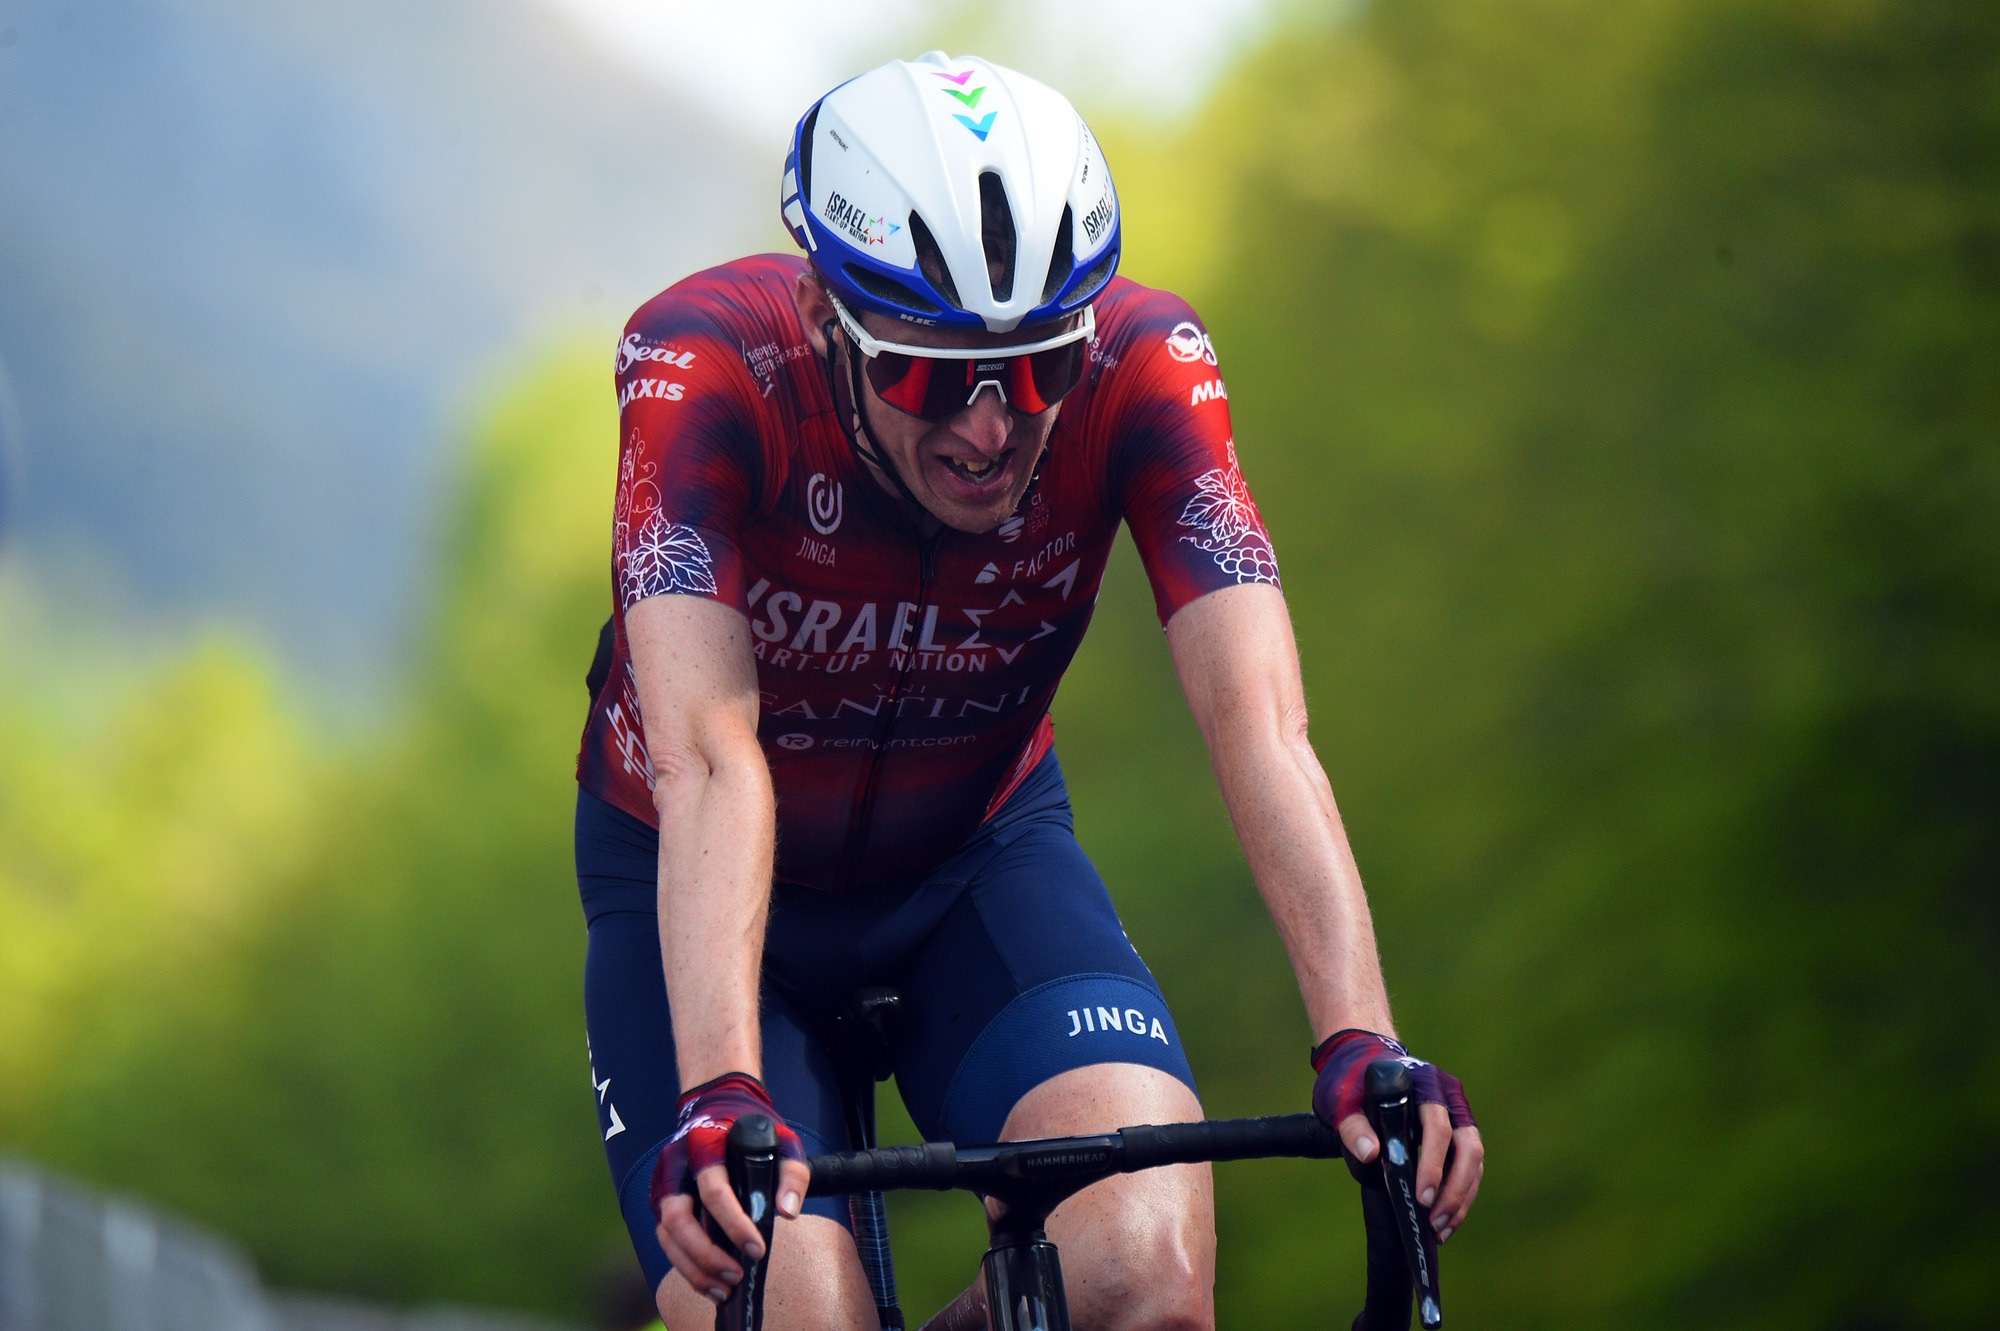 Dan re-enters Giro-battlefield with sixth place, powerful Niv attacks but doesn't get away